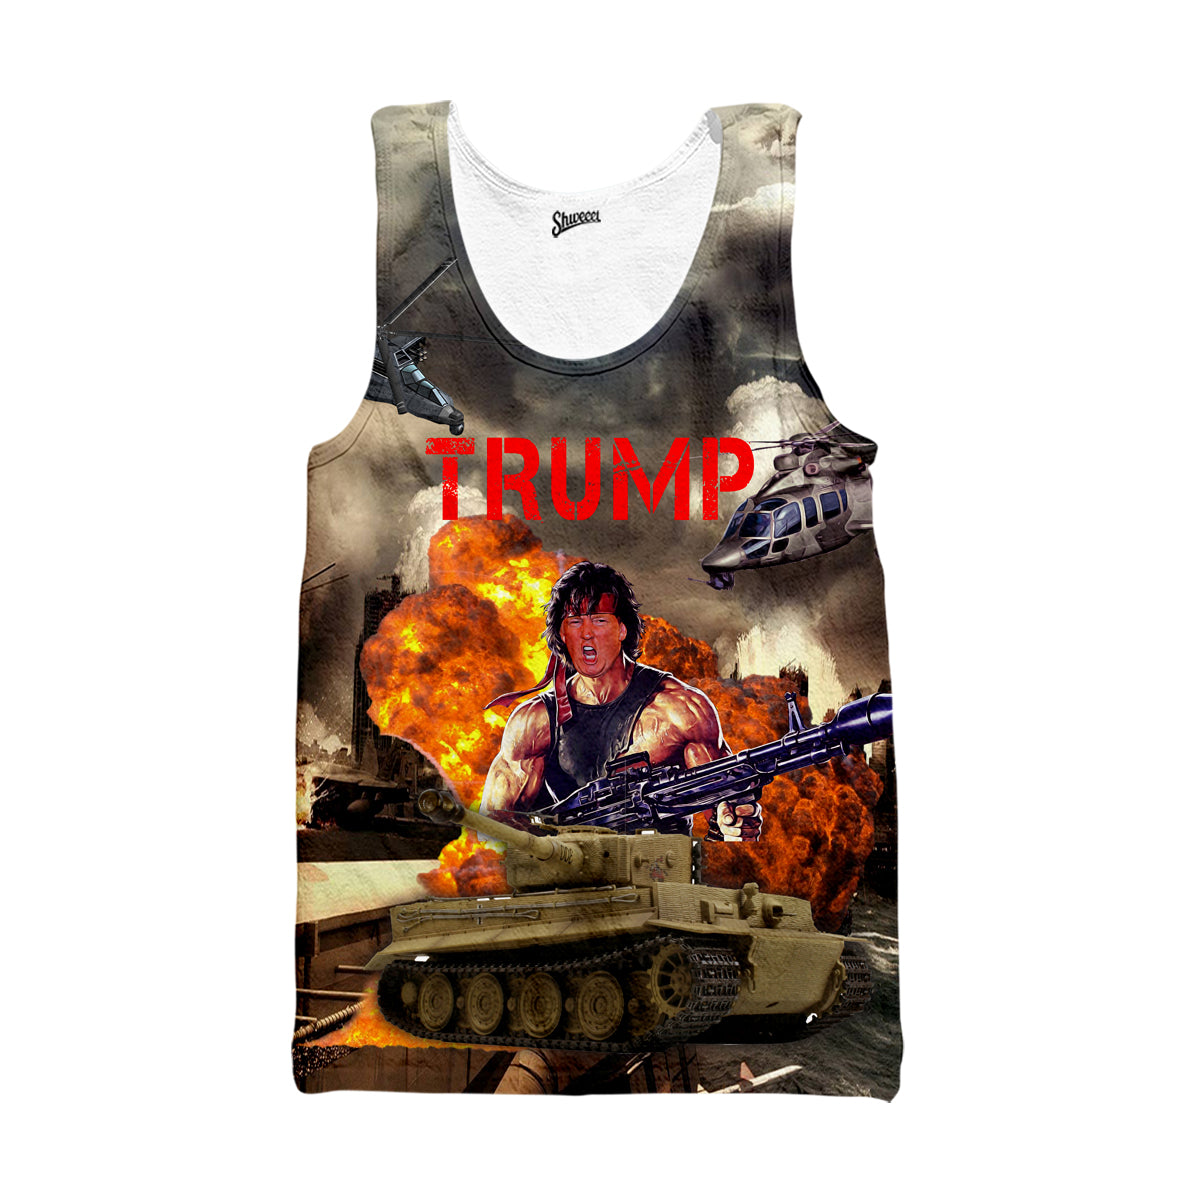 Trump Tank top - Shweeet